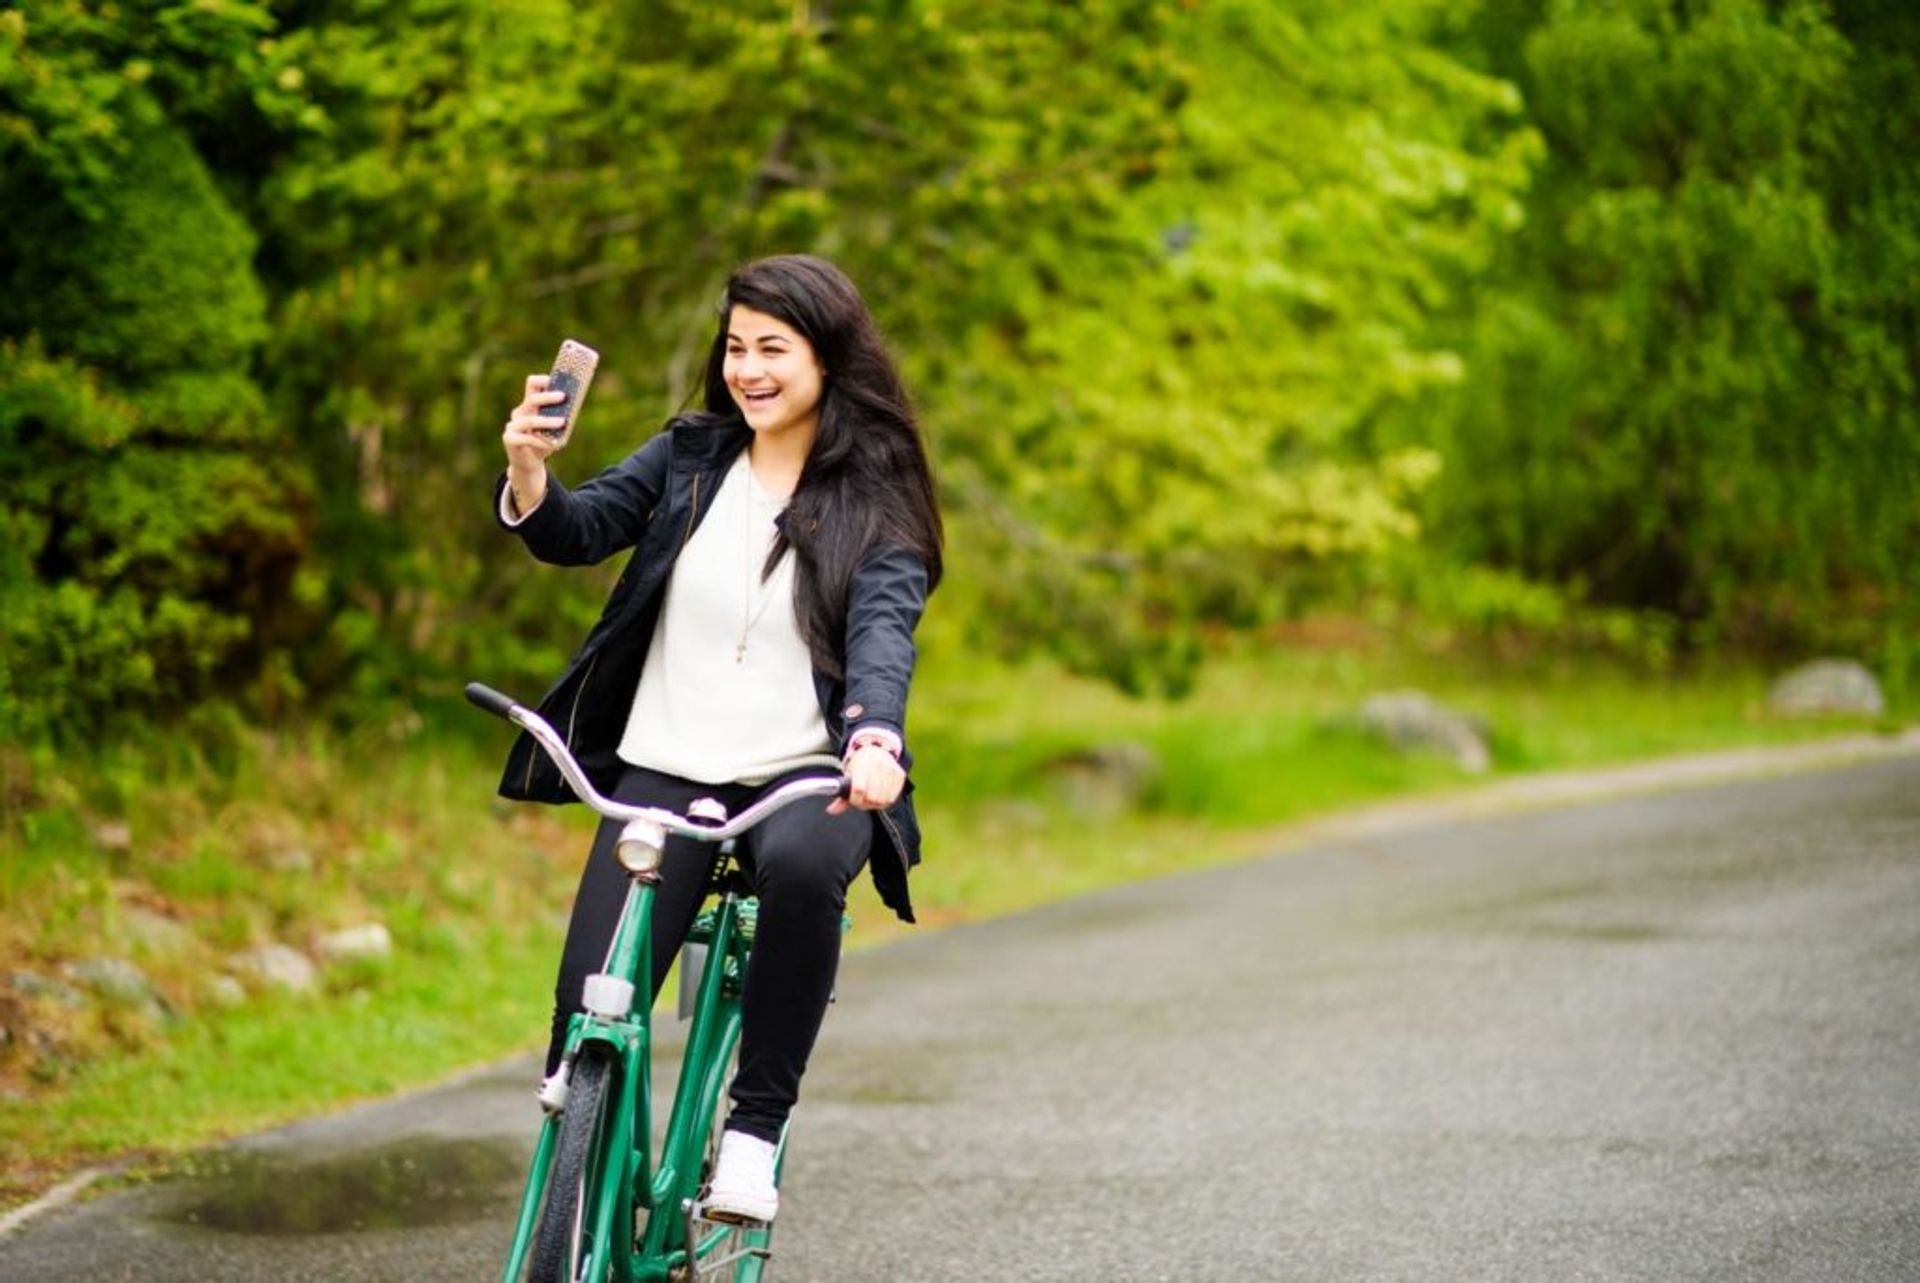 Marin cycles down a road on a green bicycle. She is holding a mobile phone in her right-hand.